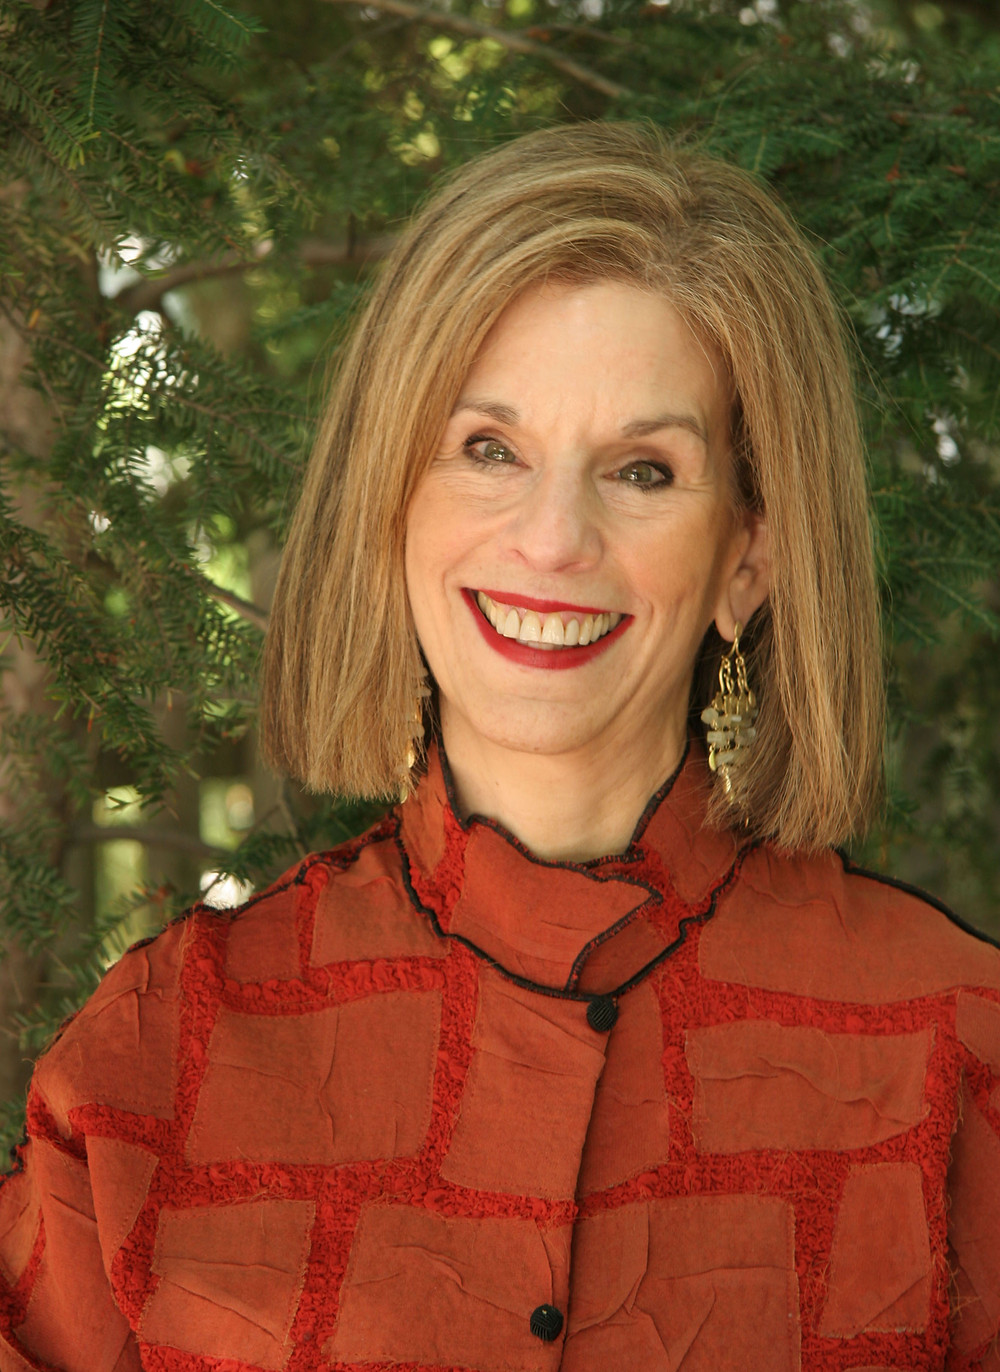 Author Mameve Medwed